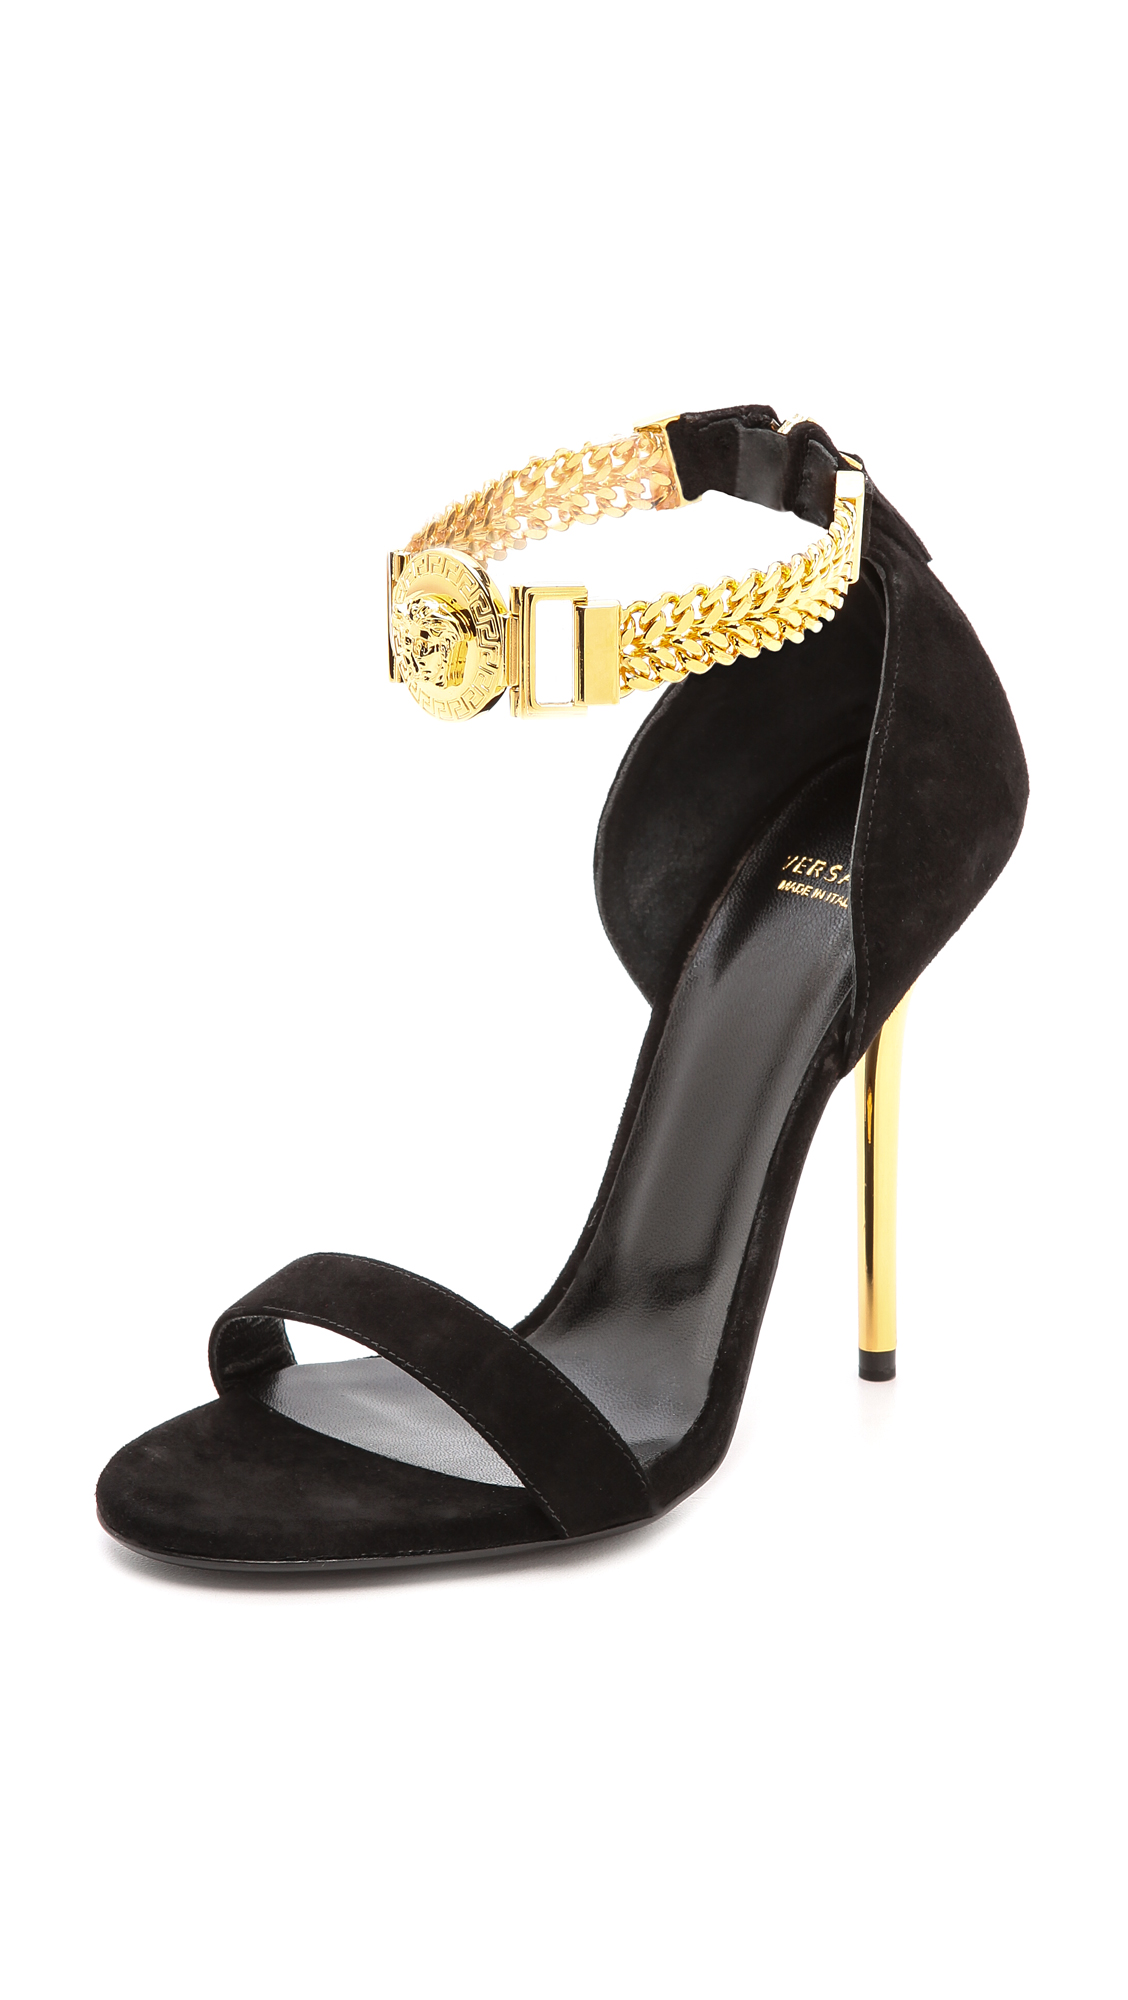 Versace Leather Ankle-Wrap Sandals free shipping prices 2015 cheap price low shipping online recommend sale online g3fusS1i